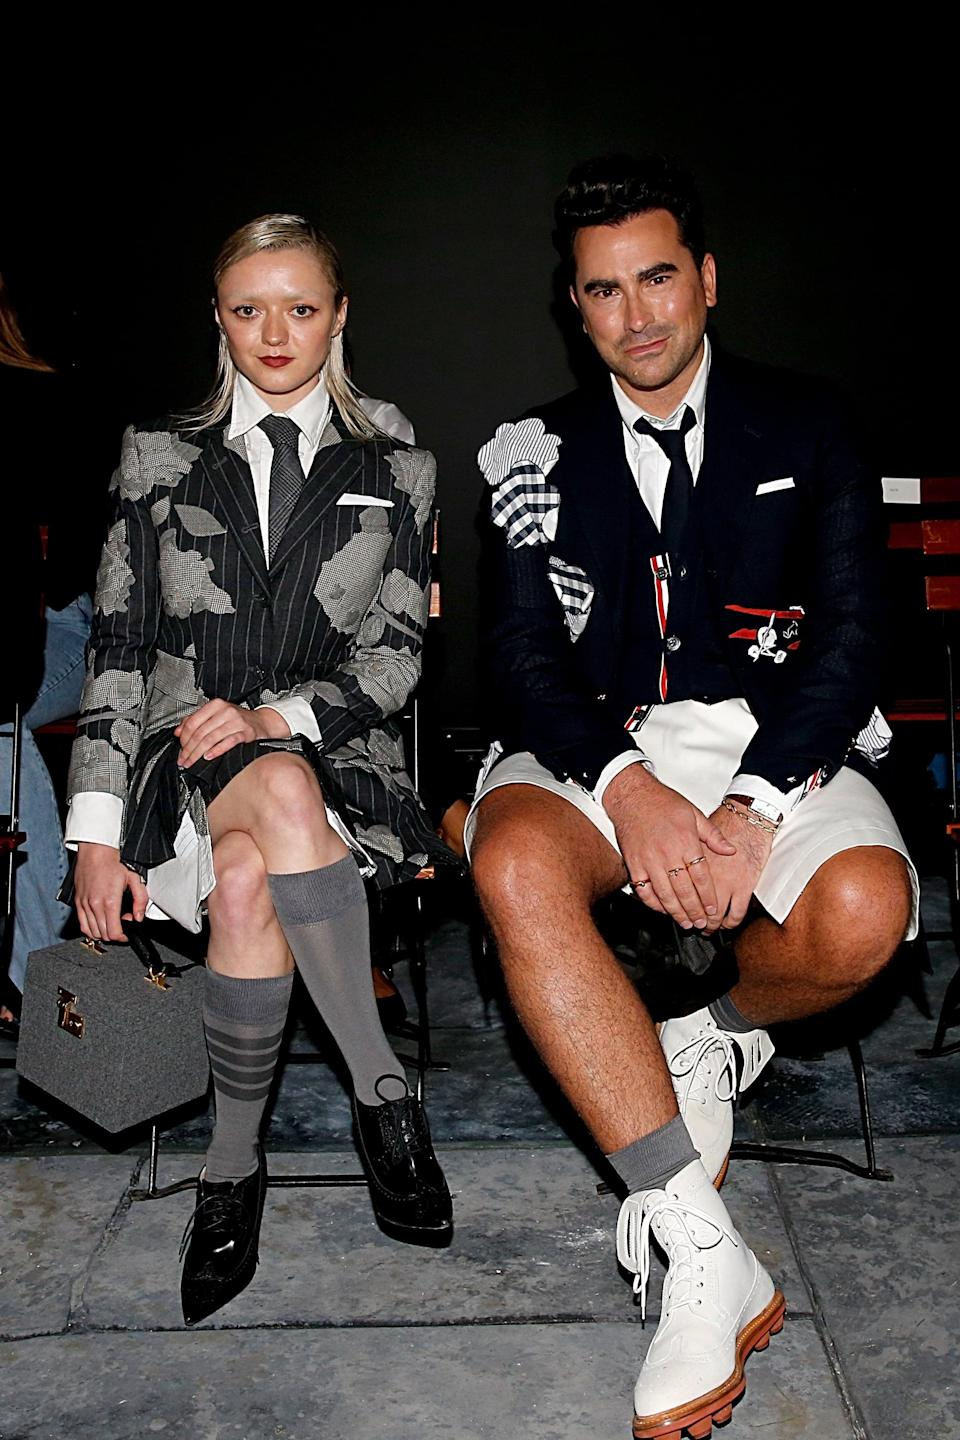 """<p><a class=""""link rapid-noclick-resp"""" href=""""https://www.popsugar.com/Dan-Levy"""" rel=""""nofollow noopener"""" target=""""_blank"""" data-ylk=""""slk:Dan Levy"""">Dan Levy</a> sat front row at the Thom Browne show during NYFW in a navy embellished vest and crisp white skort. As a close friend of Thom Browne, actor Dan Levy often goes for the designer's sharp suits for his glamorous events.</p>"""